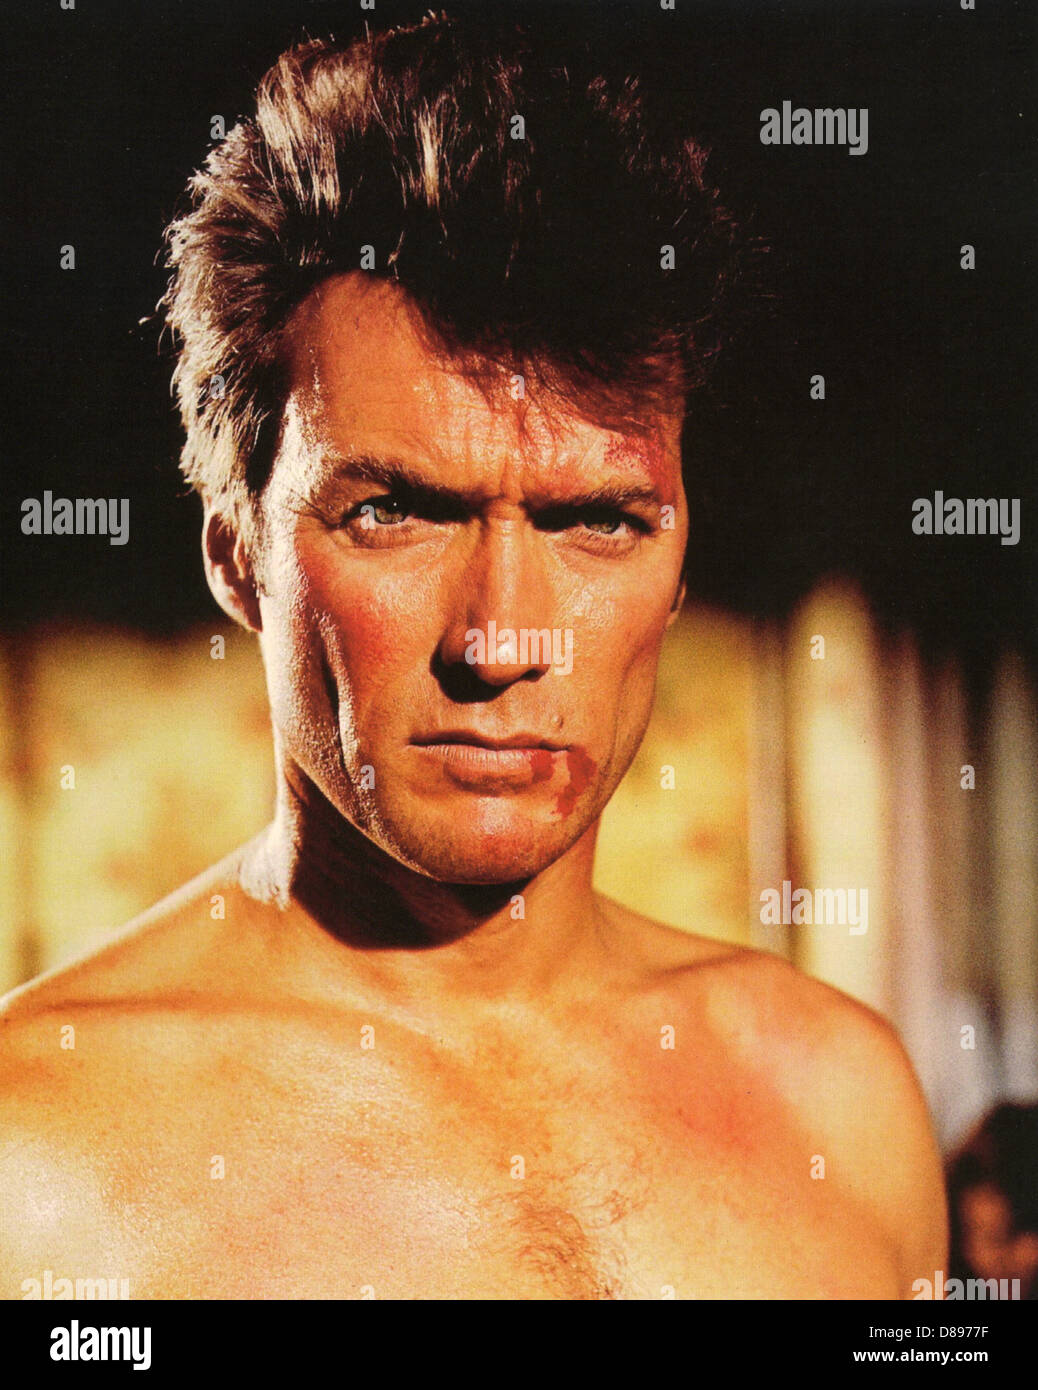 coogan s bluff 1968 universal film with clint eastwood stock photo